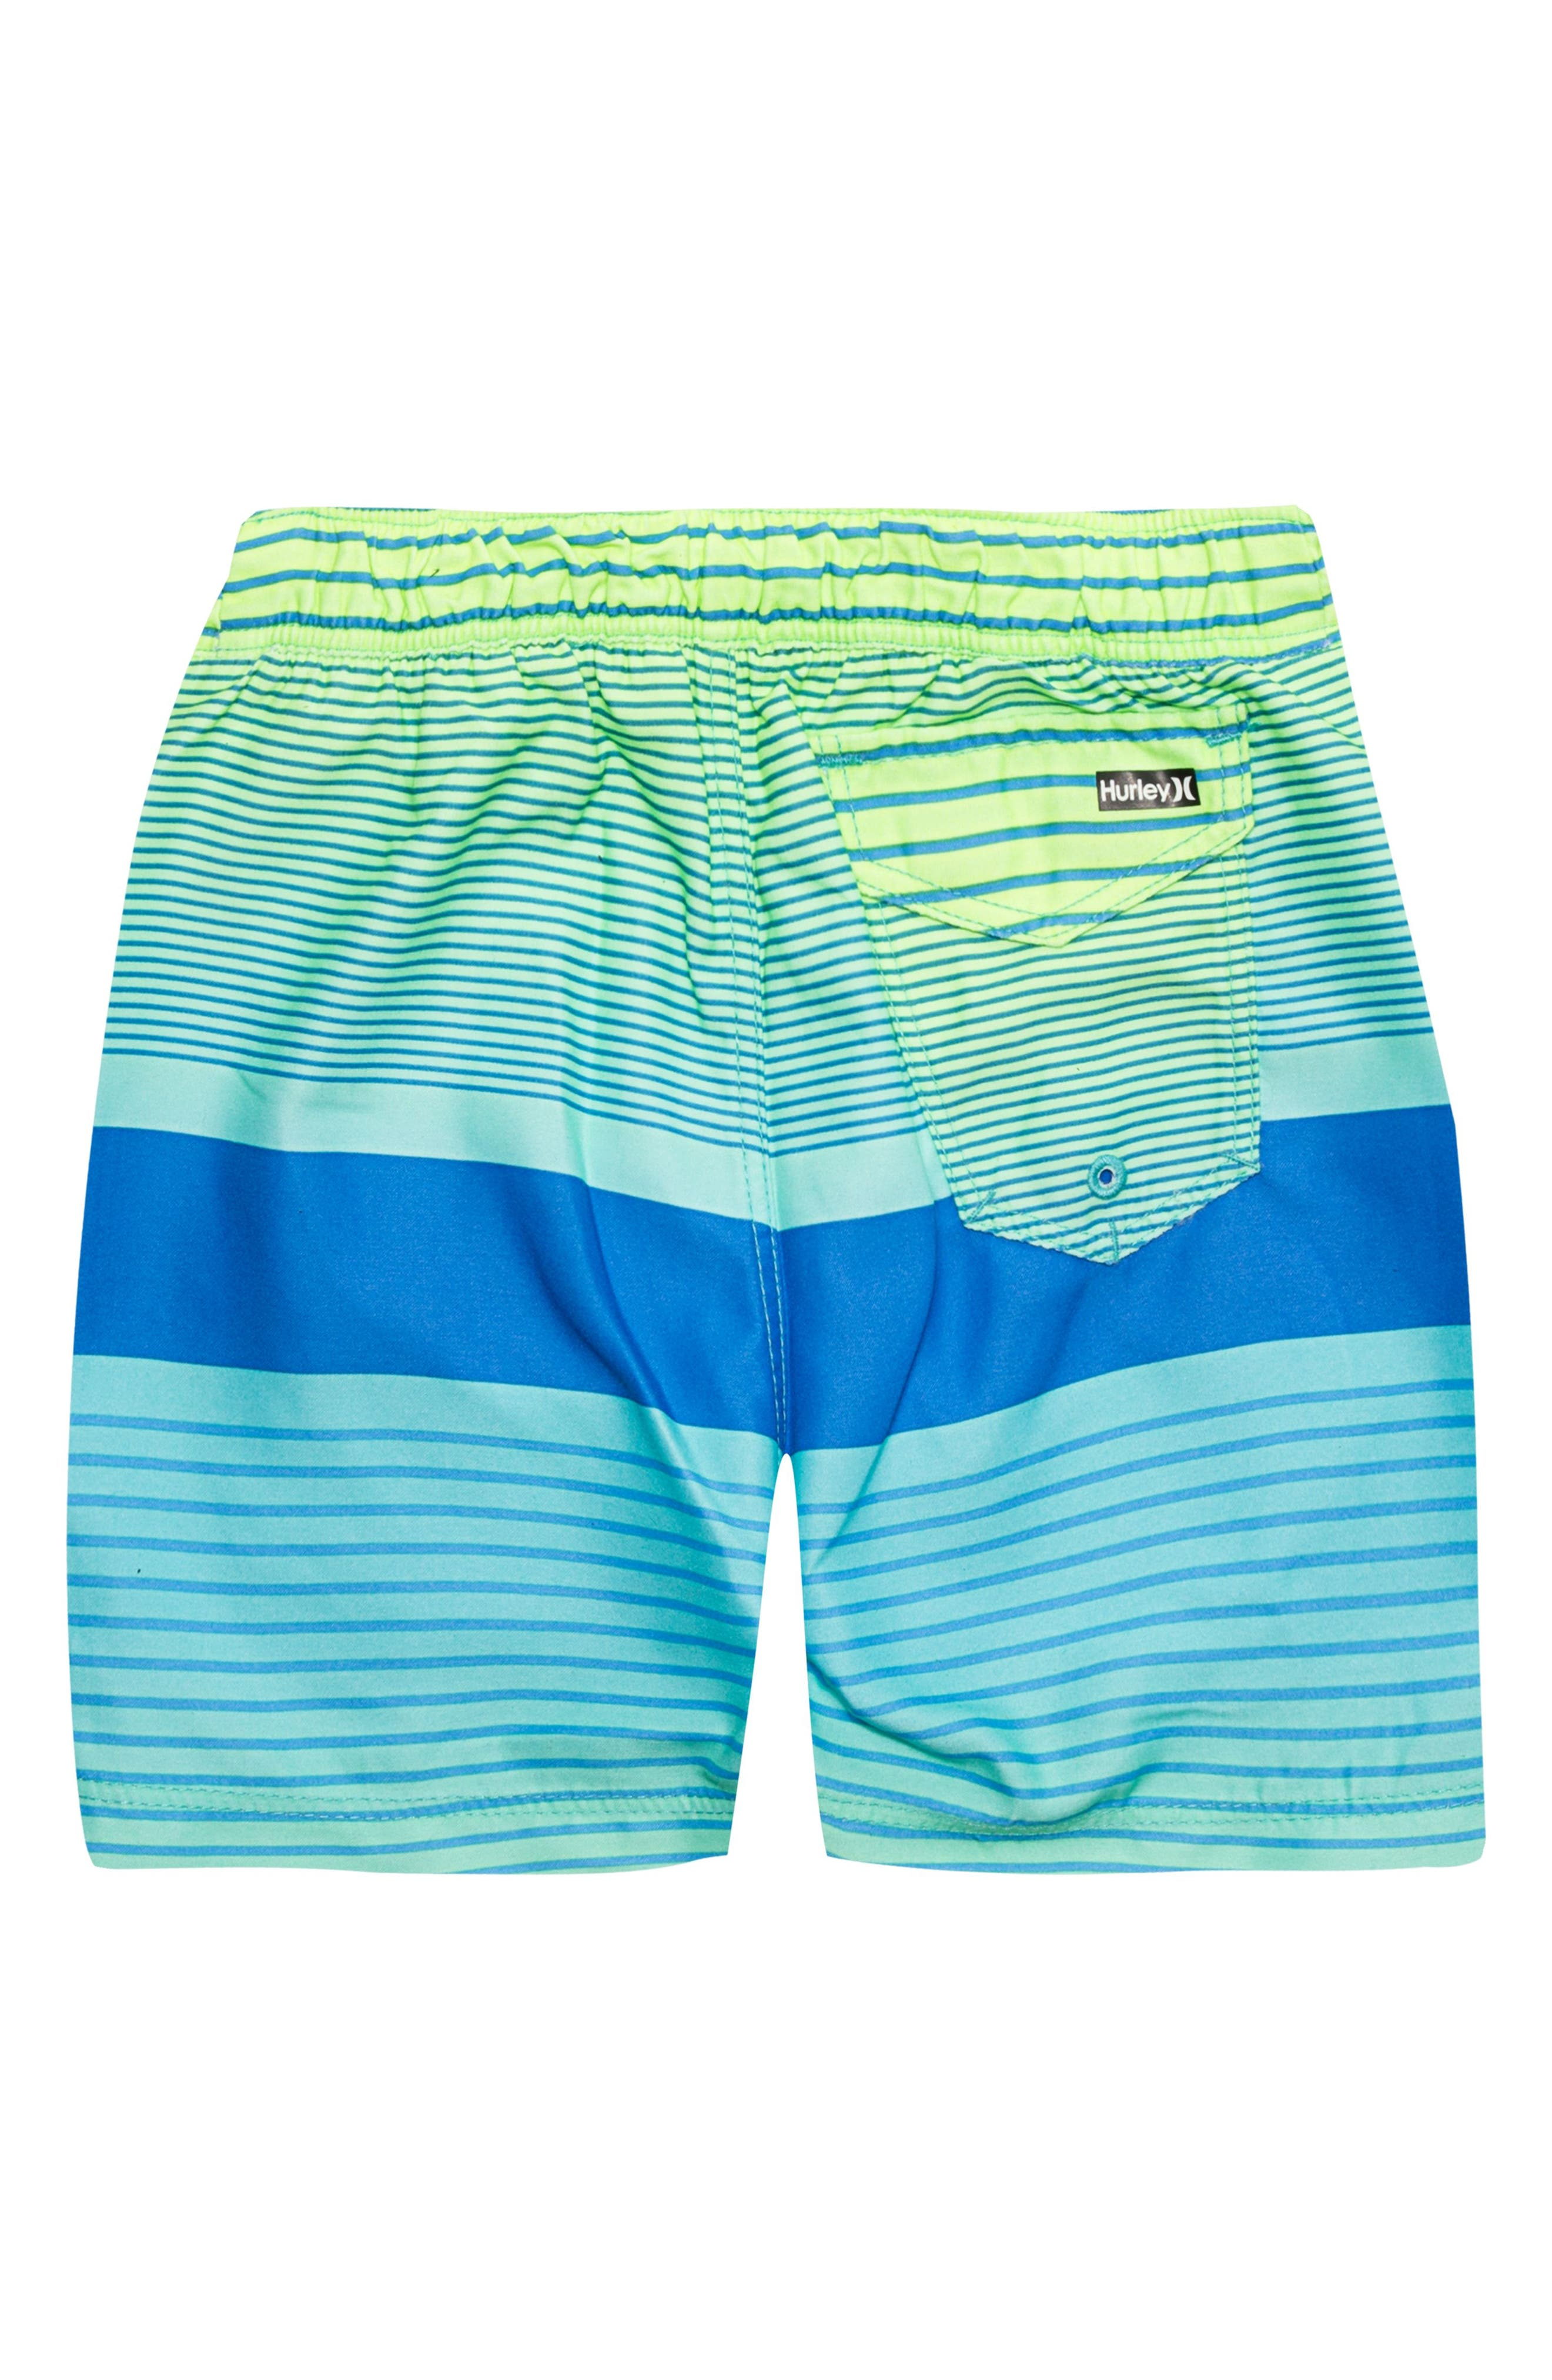 Line Up Board Shorts,                             Alternate thumbnail 2, color,                             Ghost Green